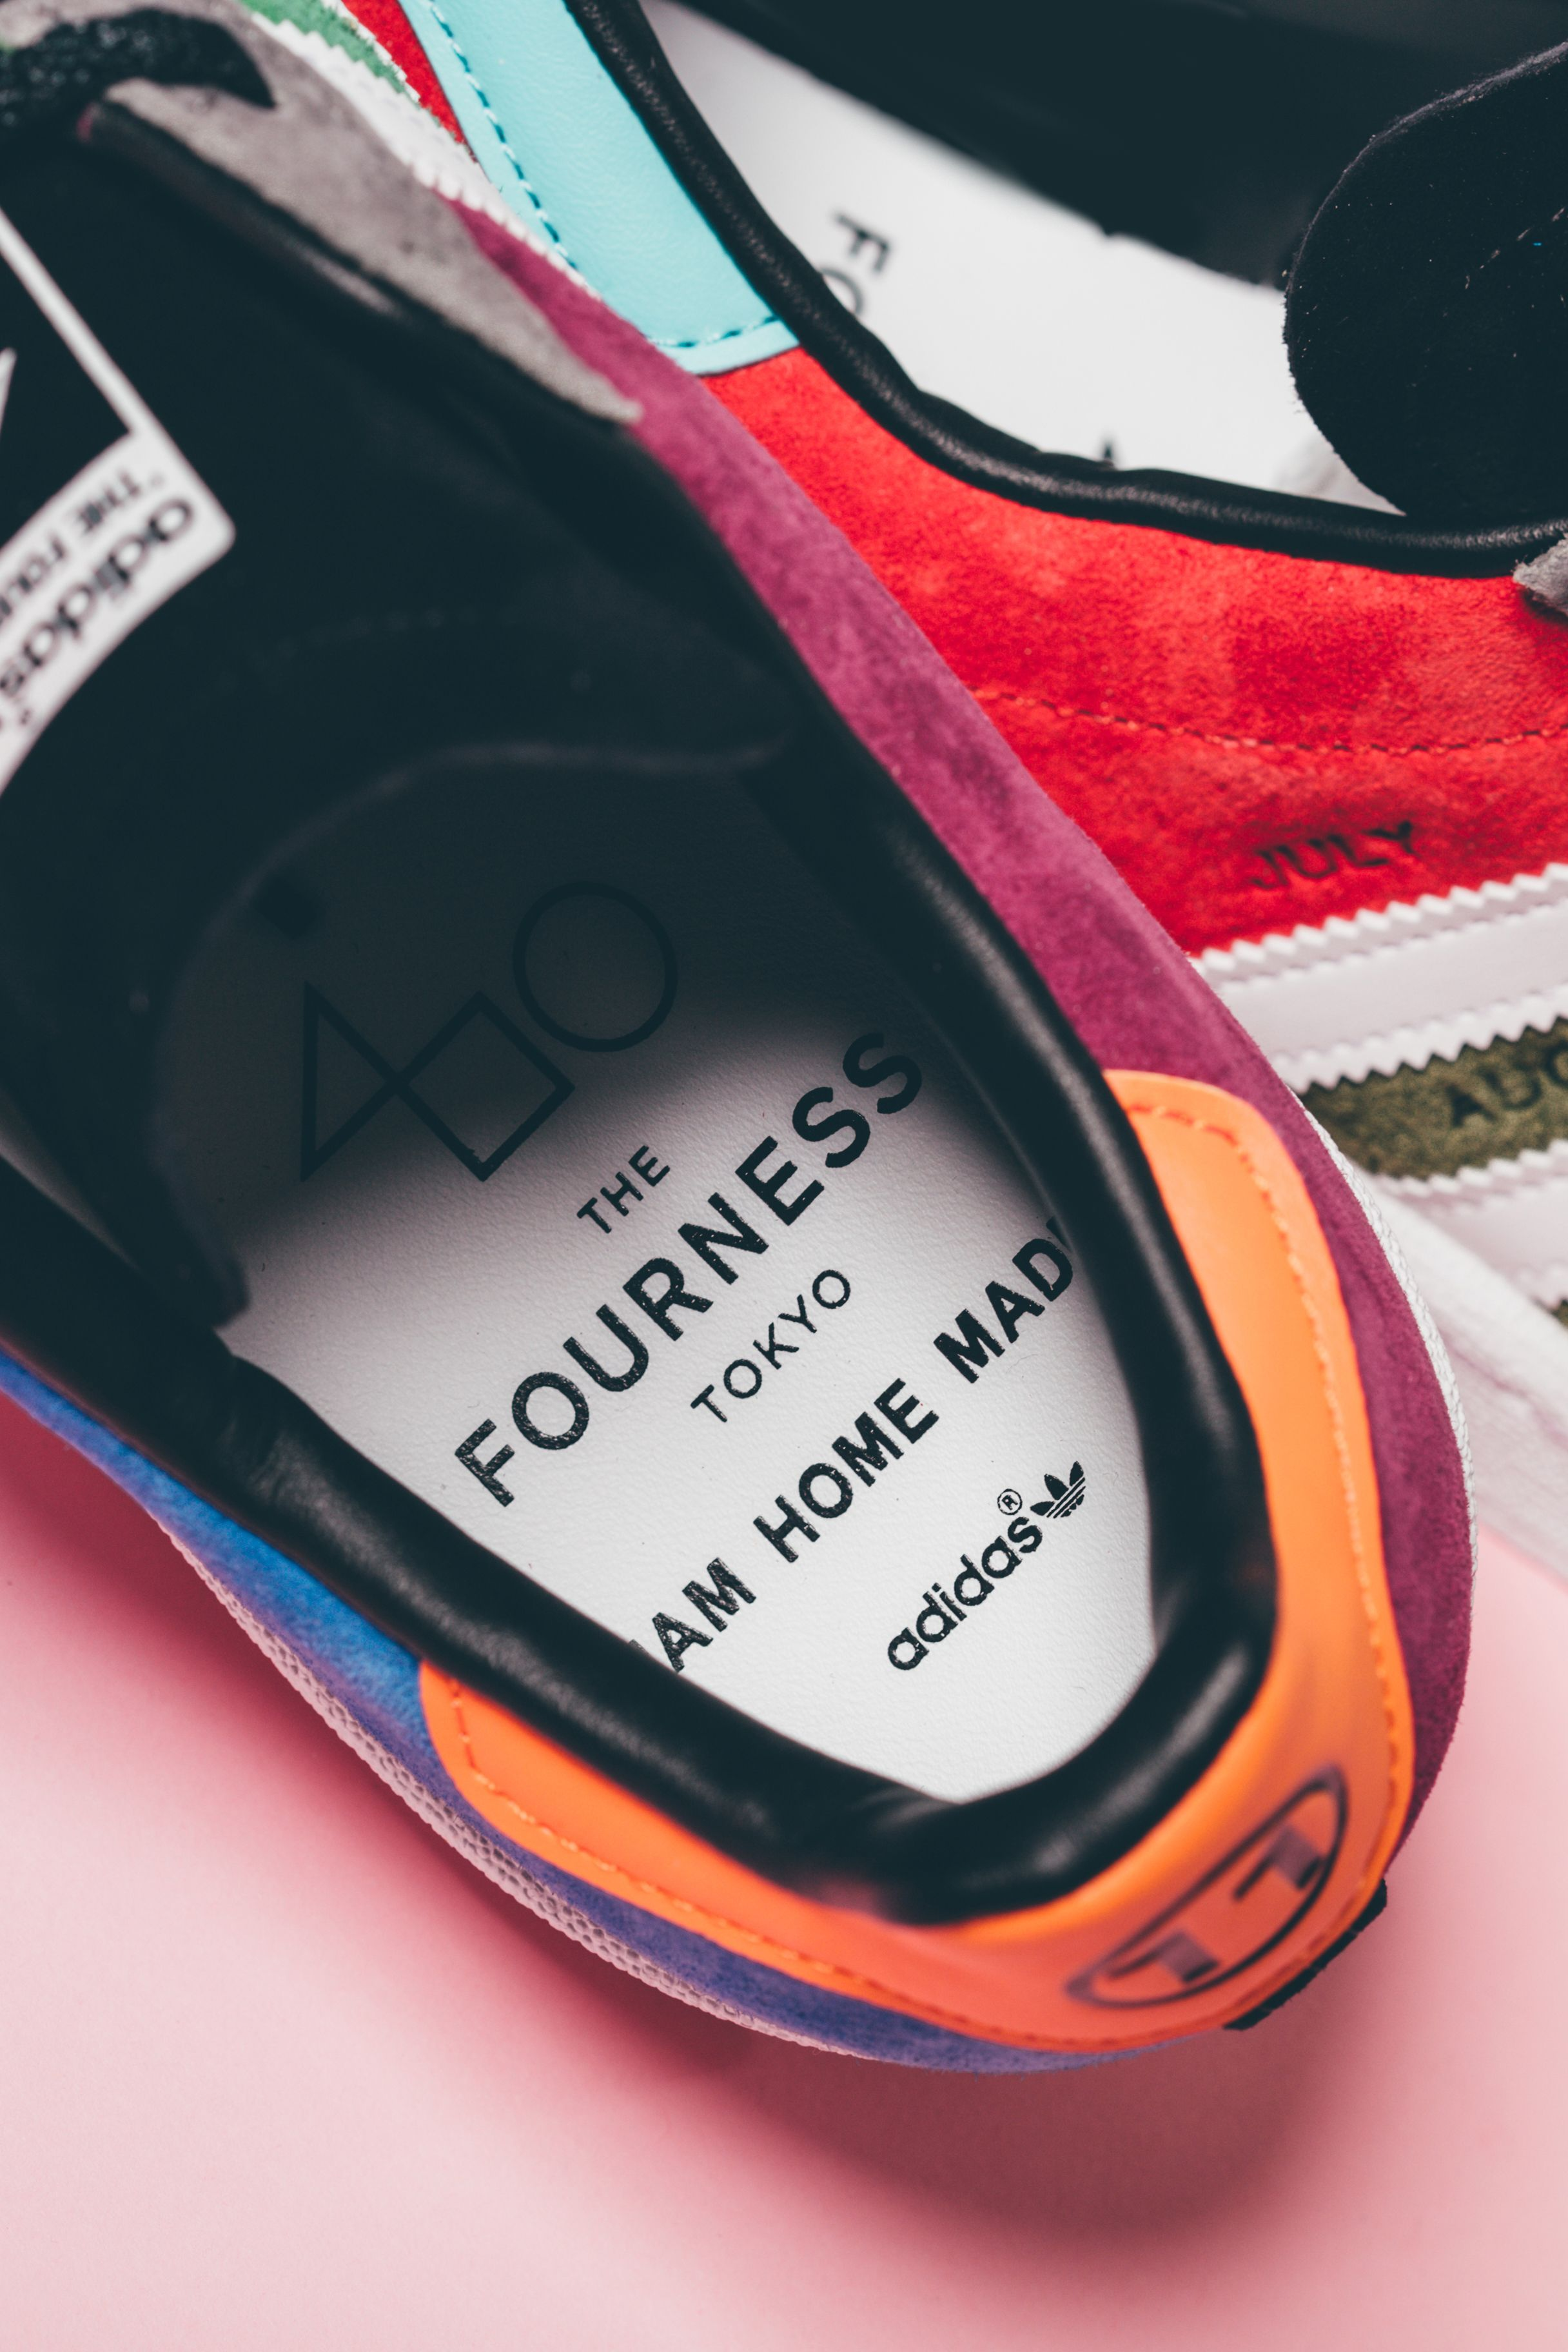 Adidas Originals x The Fourness Campus 80s  #Adidas #Originals #AdidasOriginals #Fourness #Campus80 #Fashion #Streetwear #Style #Urban #Lookbook #Photography #Footwear #Sneakers #Kicks #Shoes